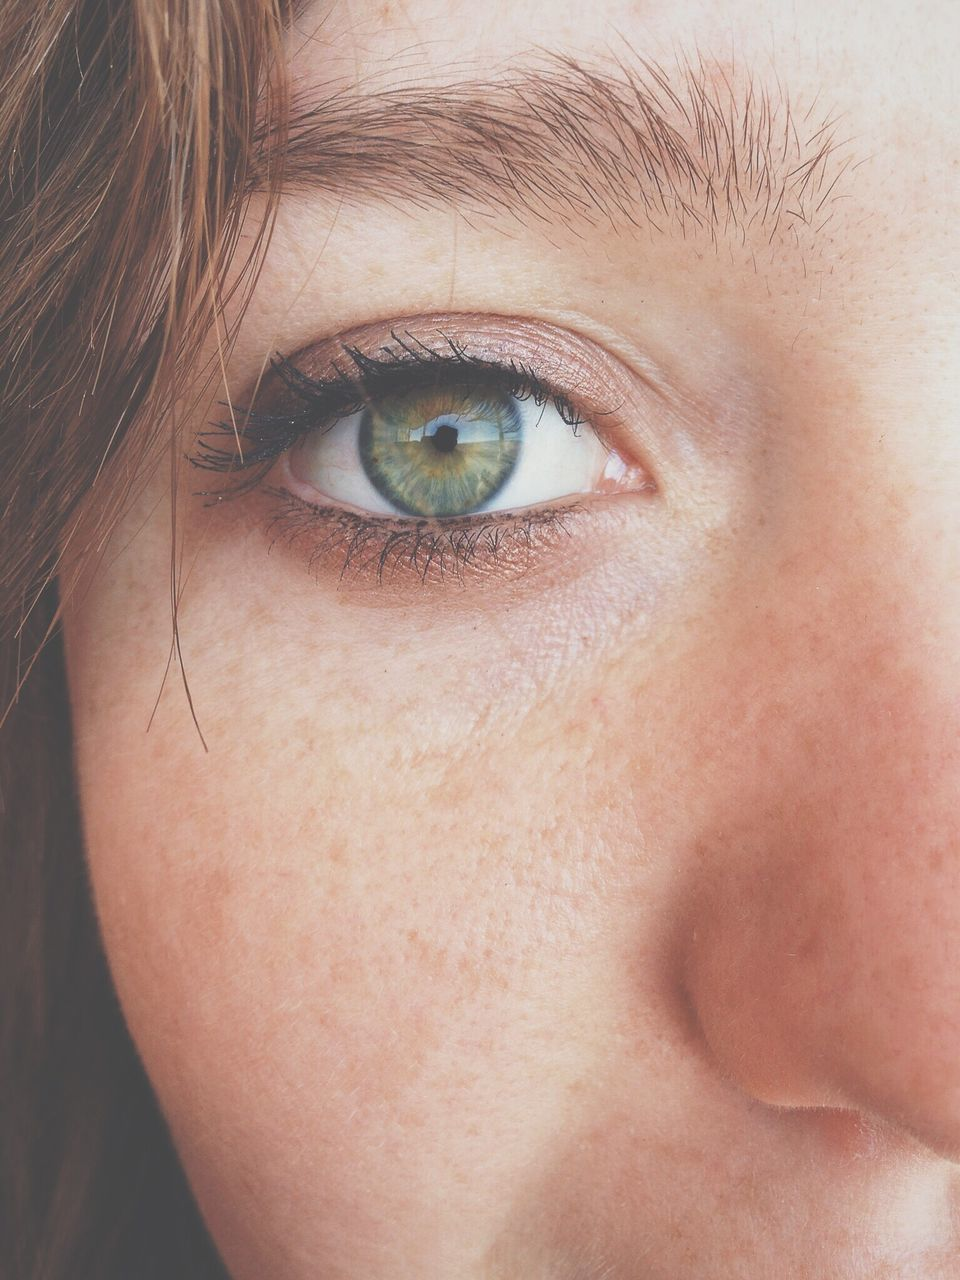 human eye, portrait, human body part, close-up, looking at camera, one person, human face, blue eyes, eyebrow, eyesight, real people, eyelash, eyeball, day, outdoors, young adult, adult, people